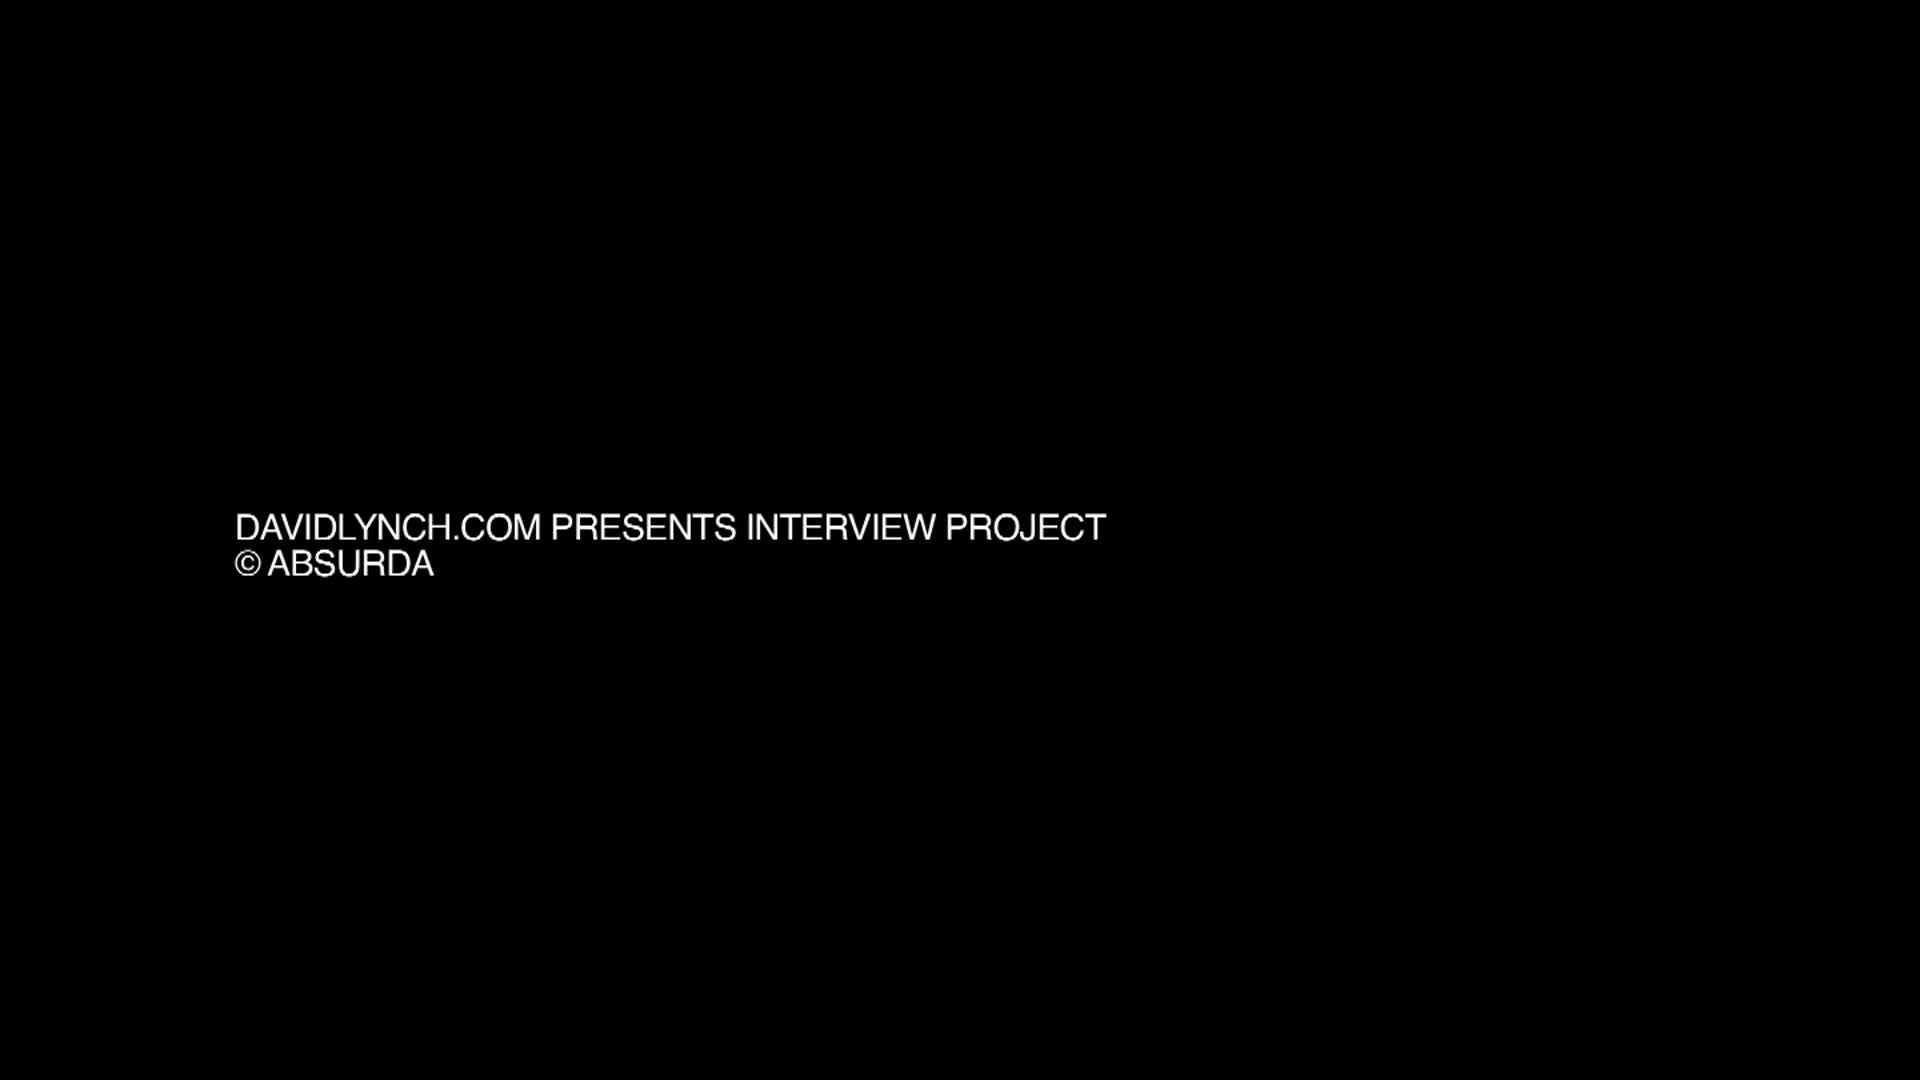 People's Voice / Webby Award Winner - David Lynch Interview Project